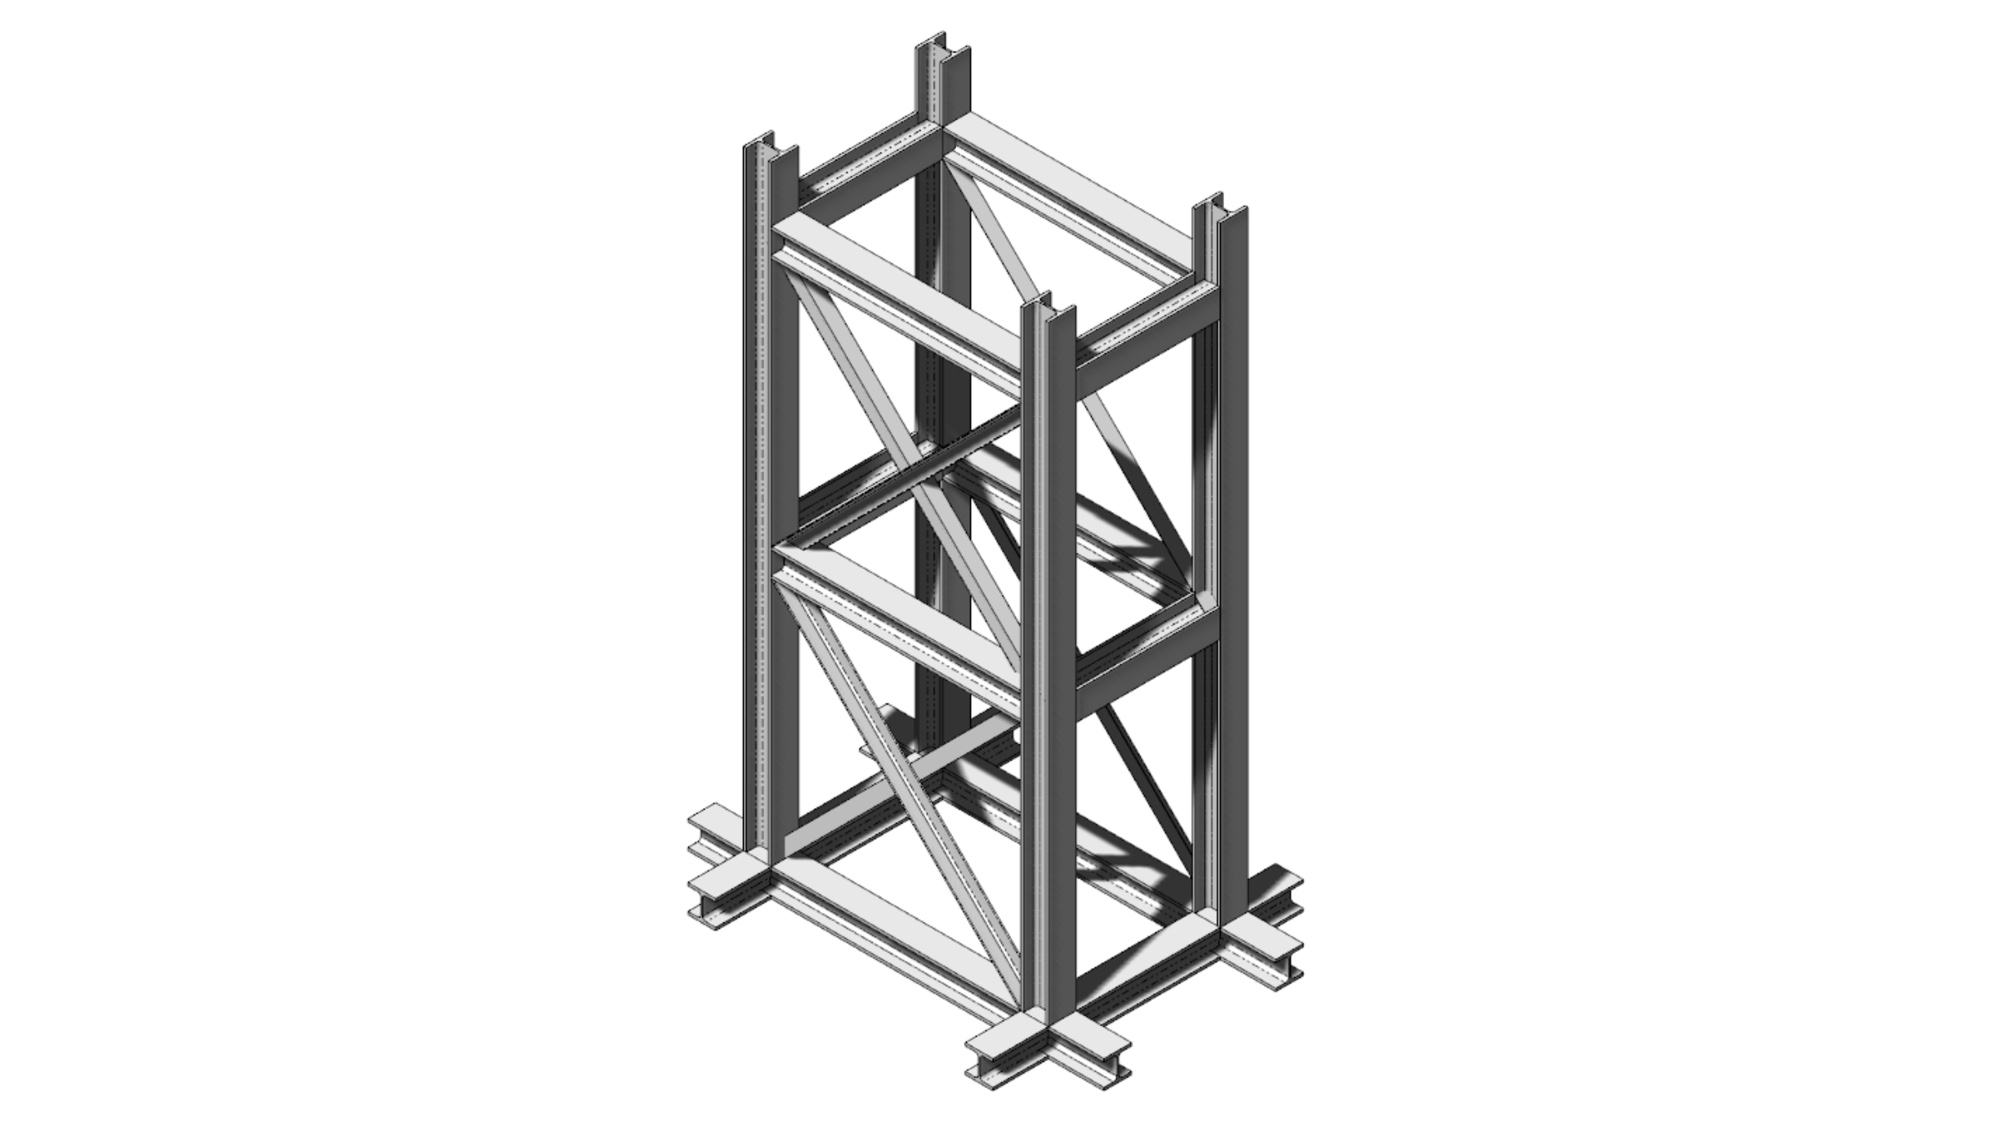 Timberr - Steel transports frames